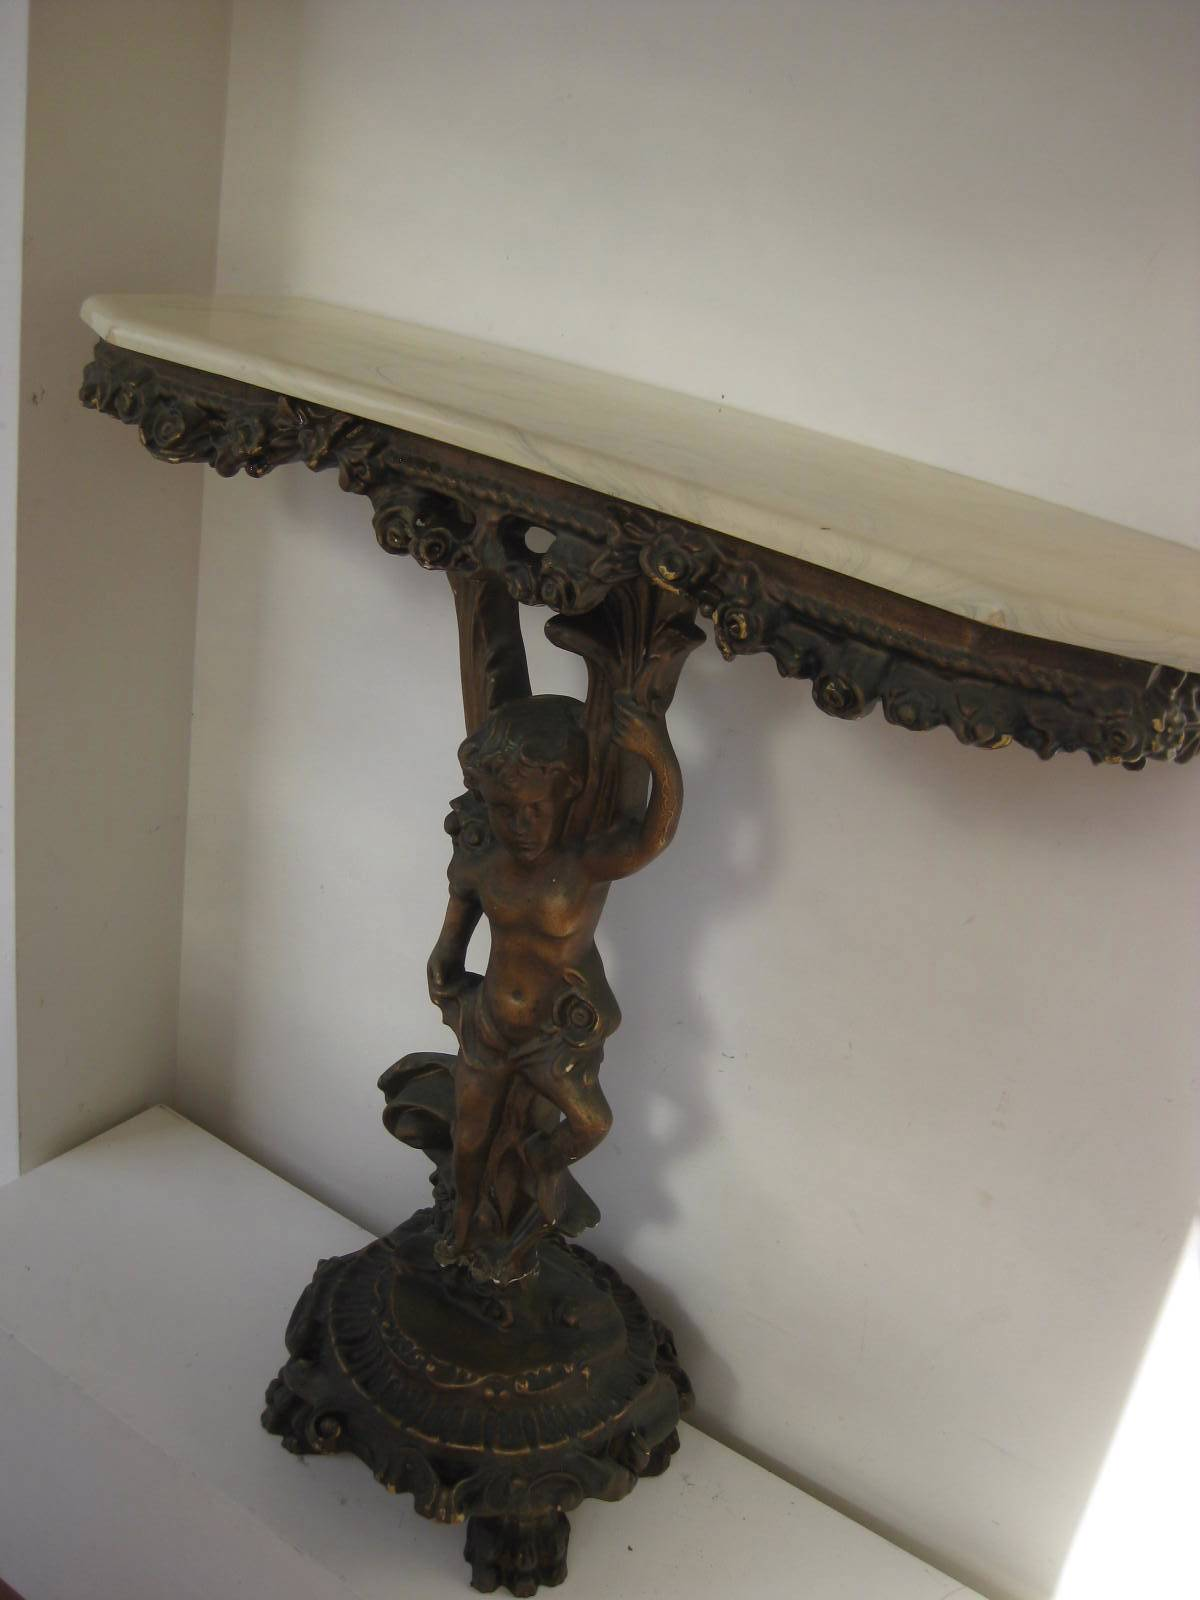 TAB0008 TABLE, Hall Table - Cherub w Pedestal Base $37.50